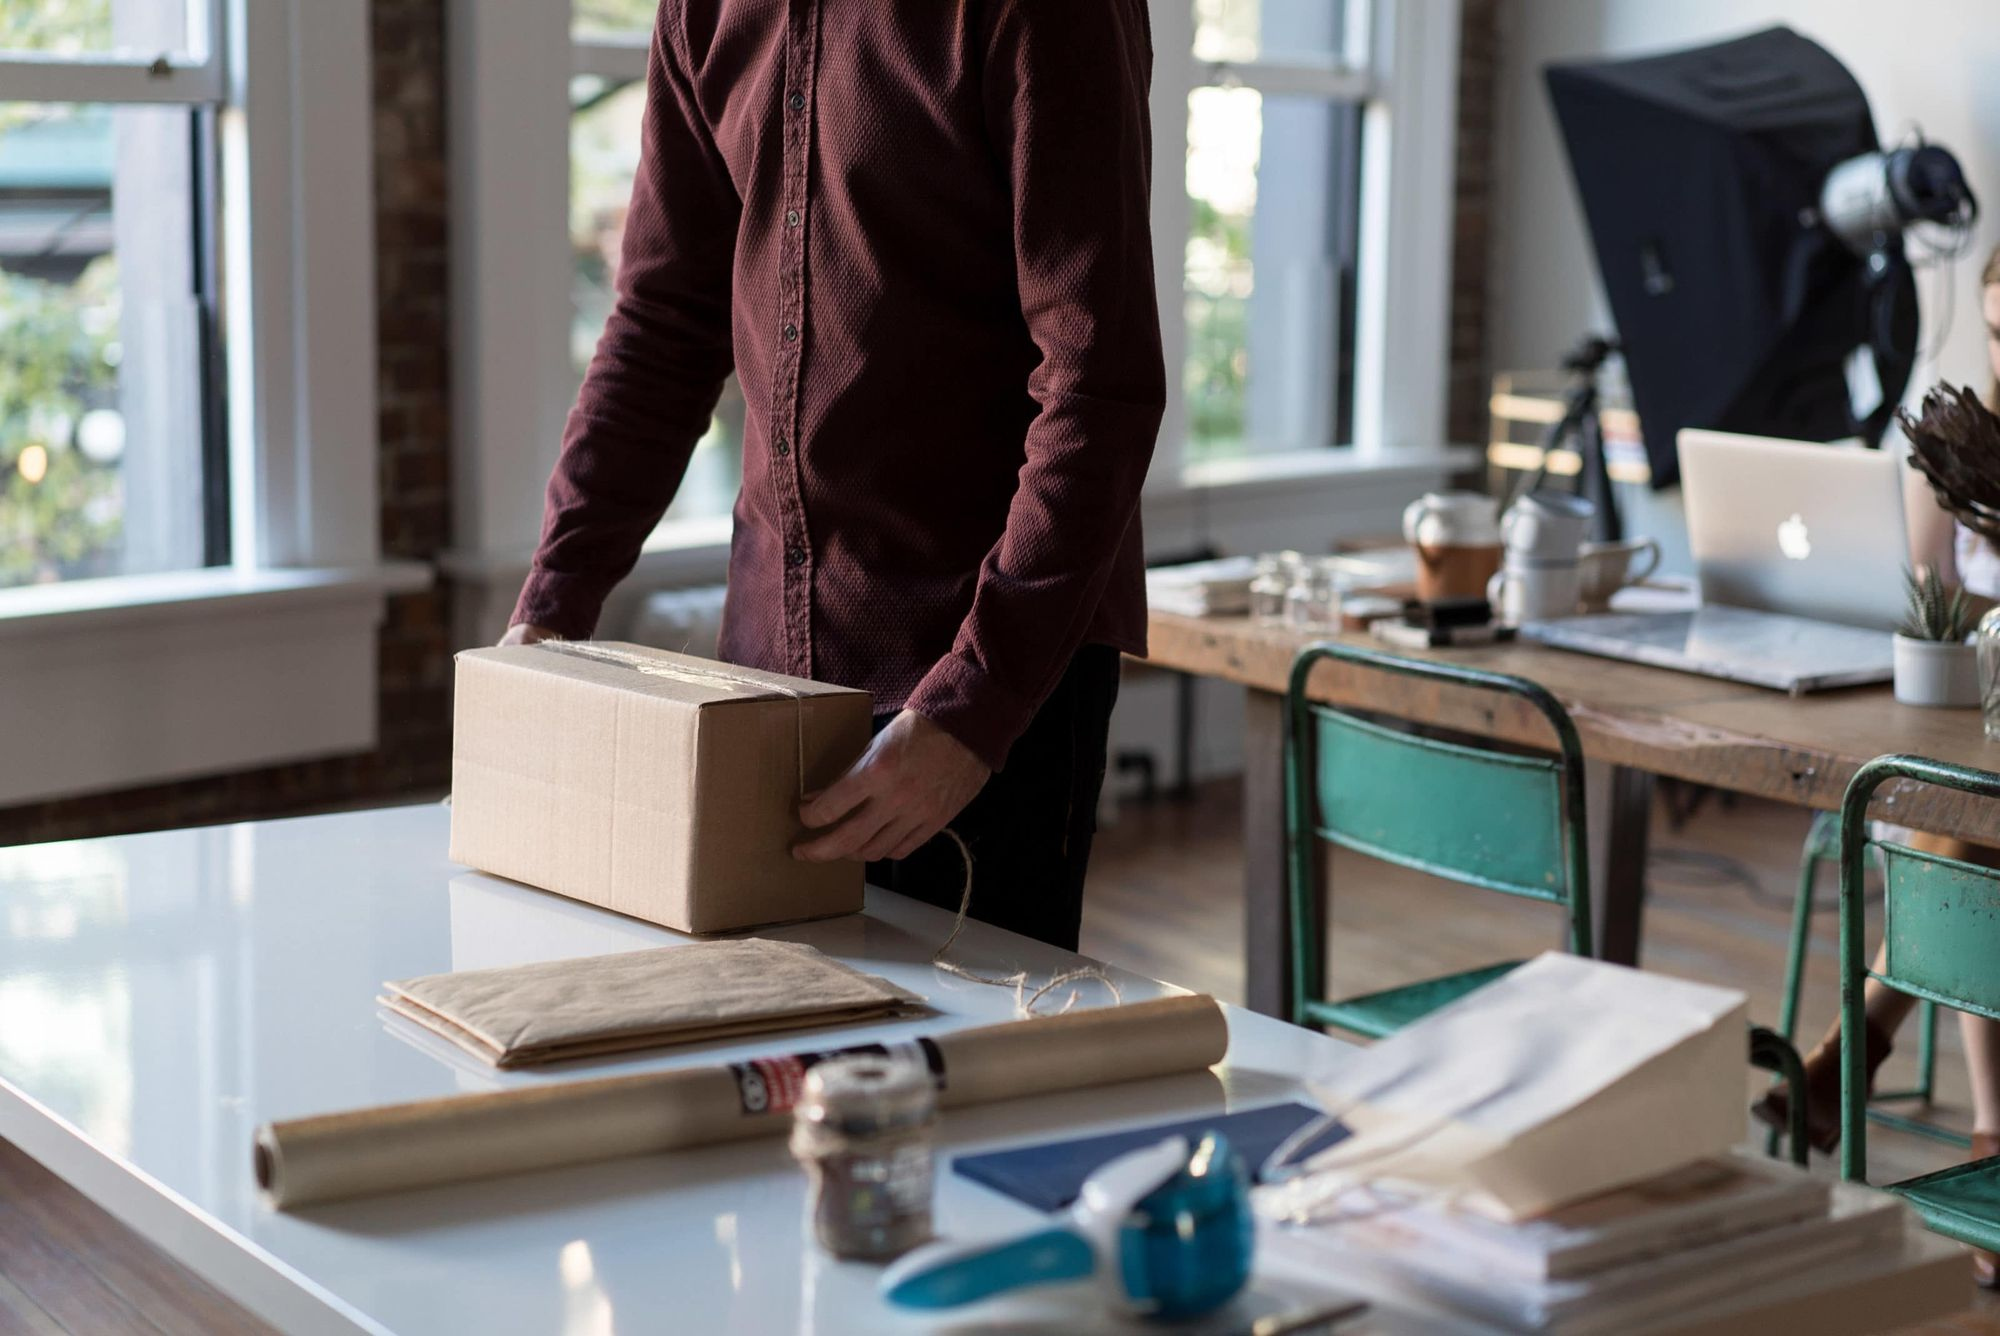 Man prepares box that would be an ideal example for how to save money on USPS shipping